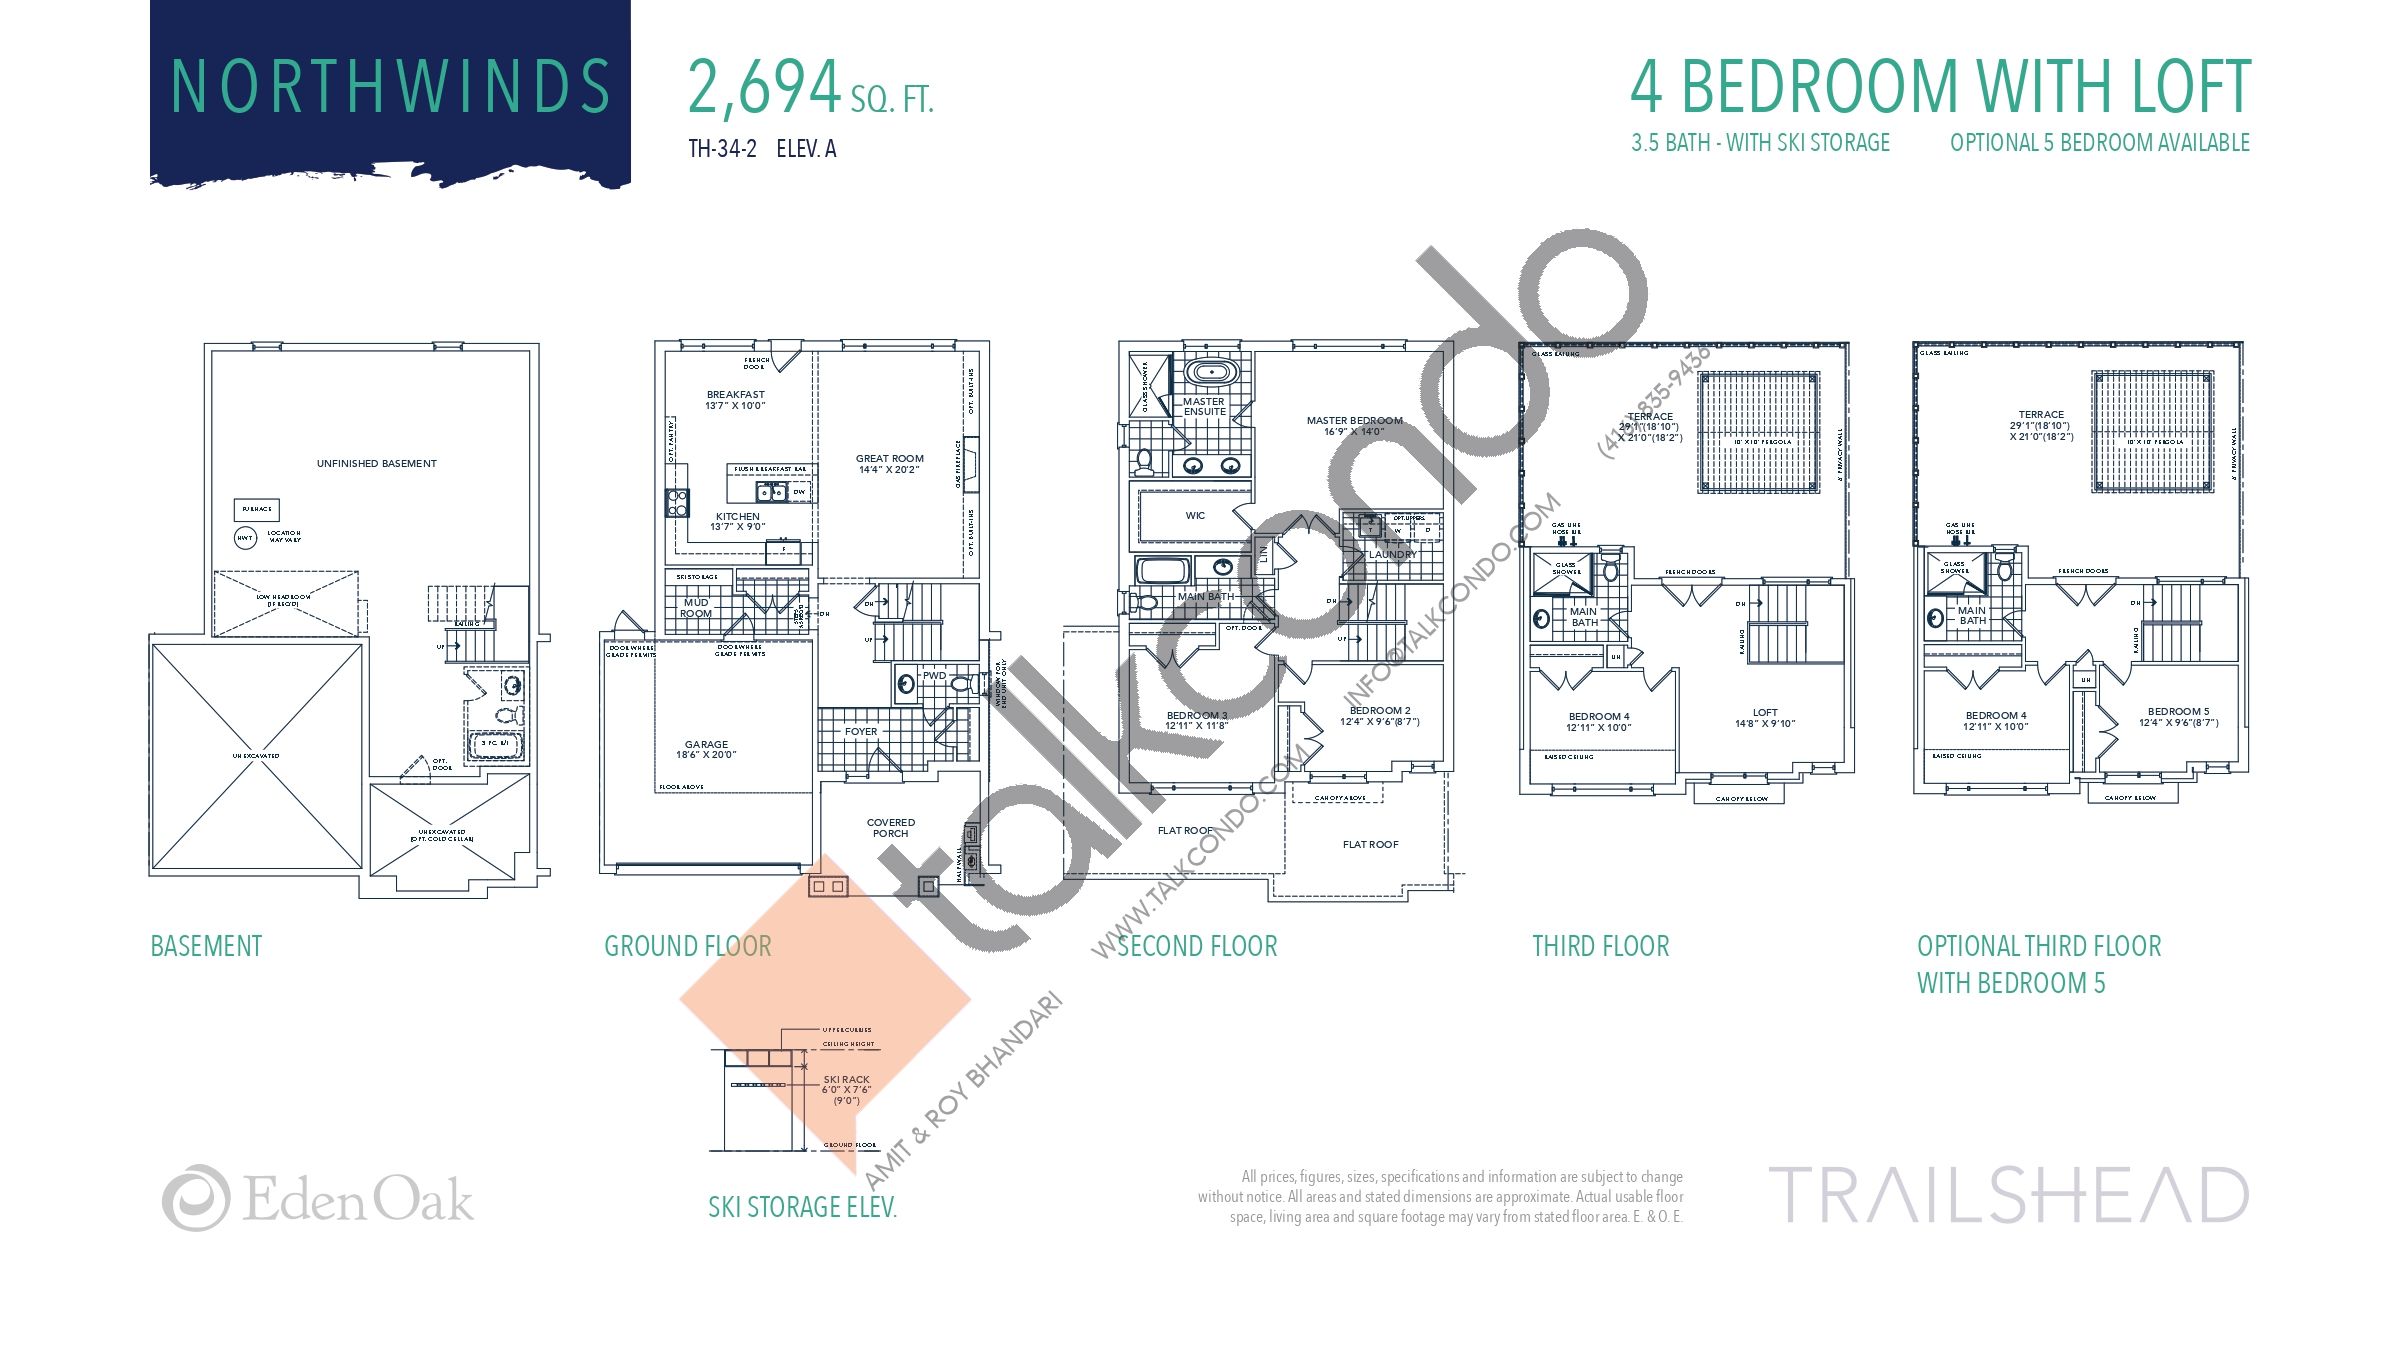 Northwinds (1/2) Floor Plan at Trailshead Towns - 2694 sq.ft